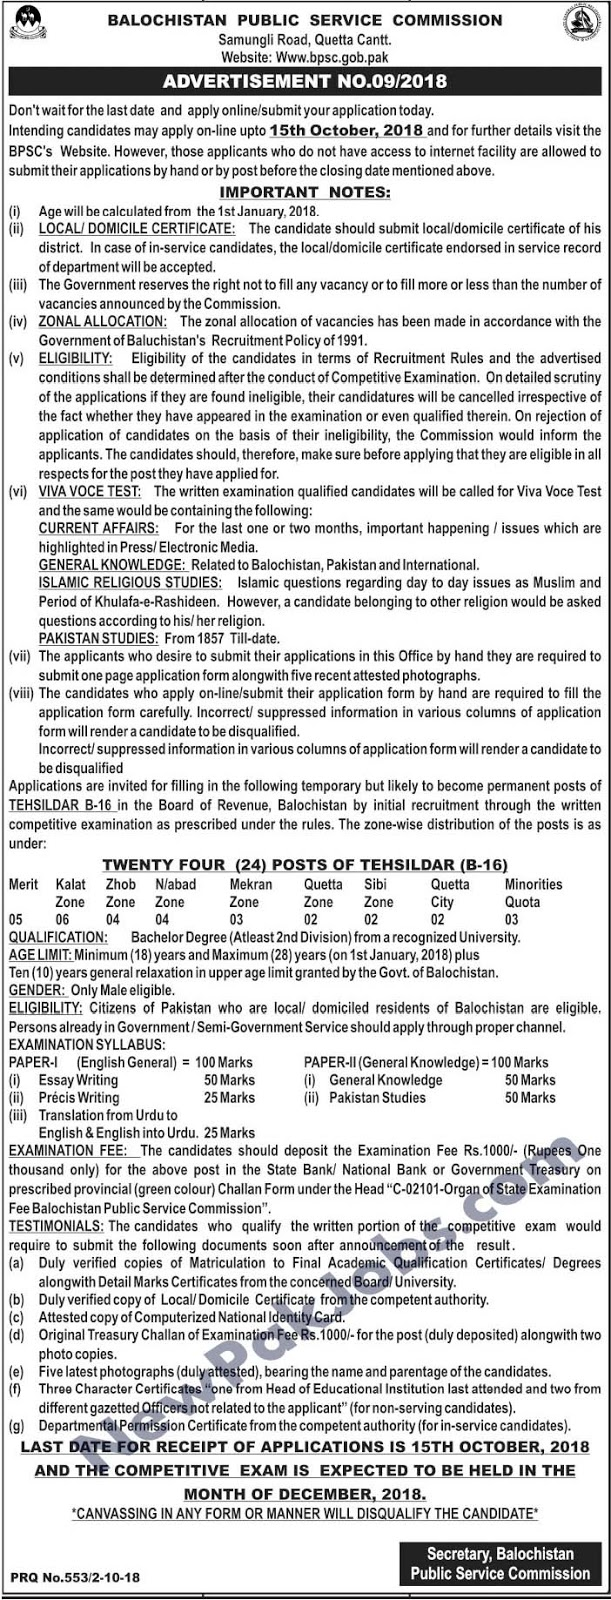 Tehsildar-Jobs-in-Balochistan-Public-Service-Commission-BPSC-03-Oct-2018